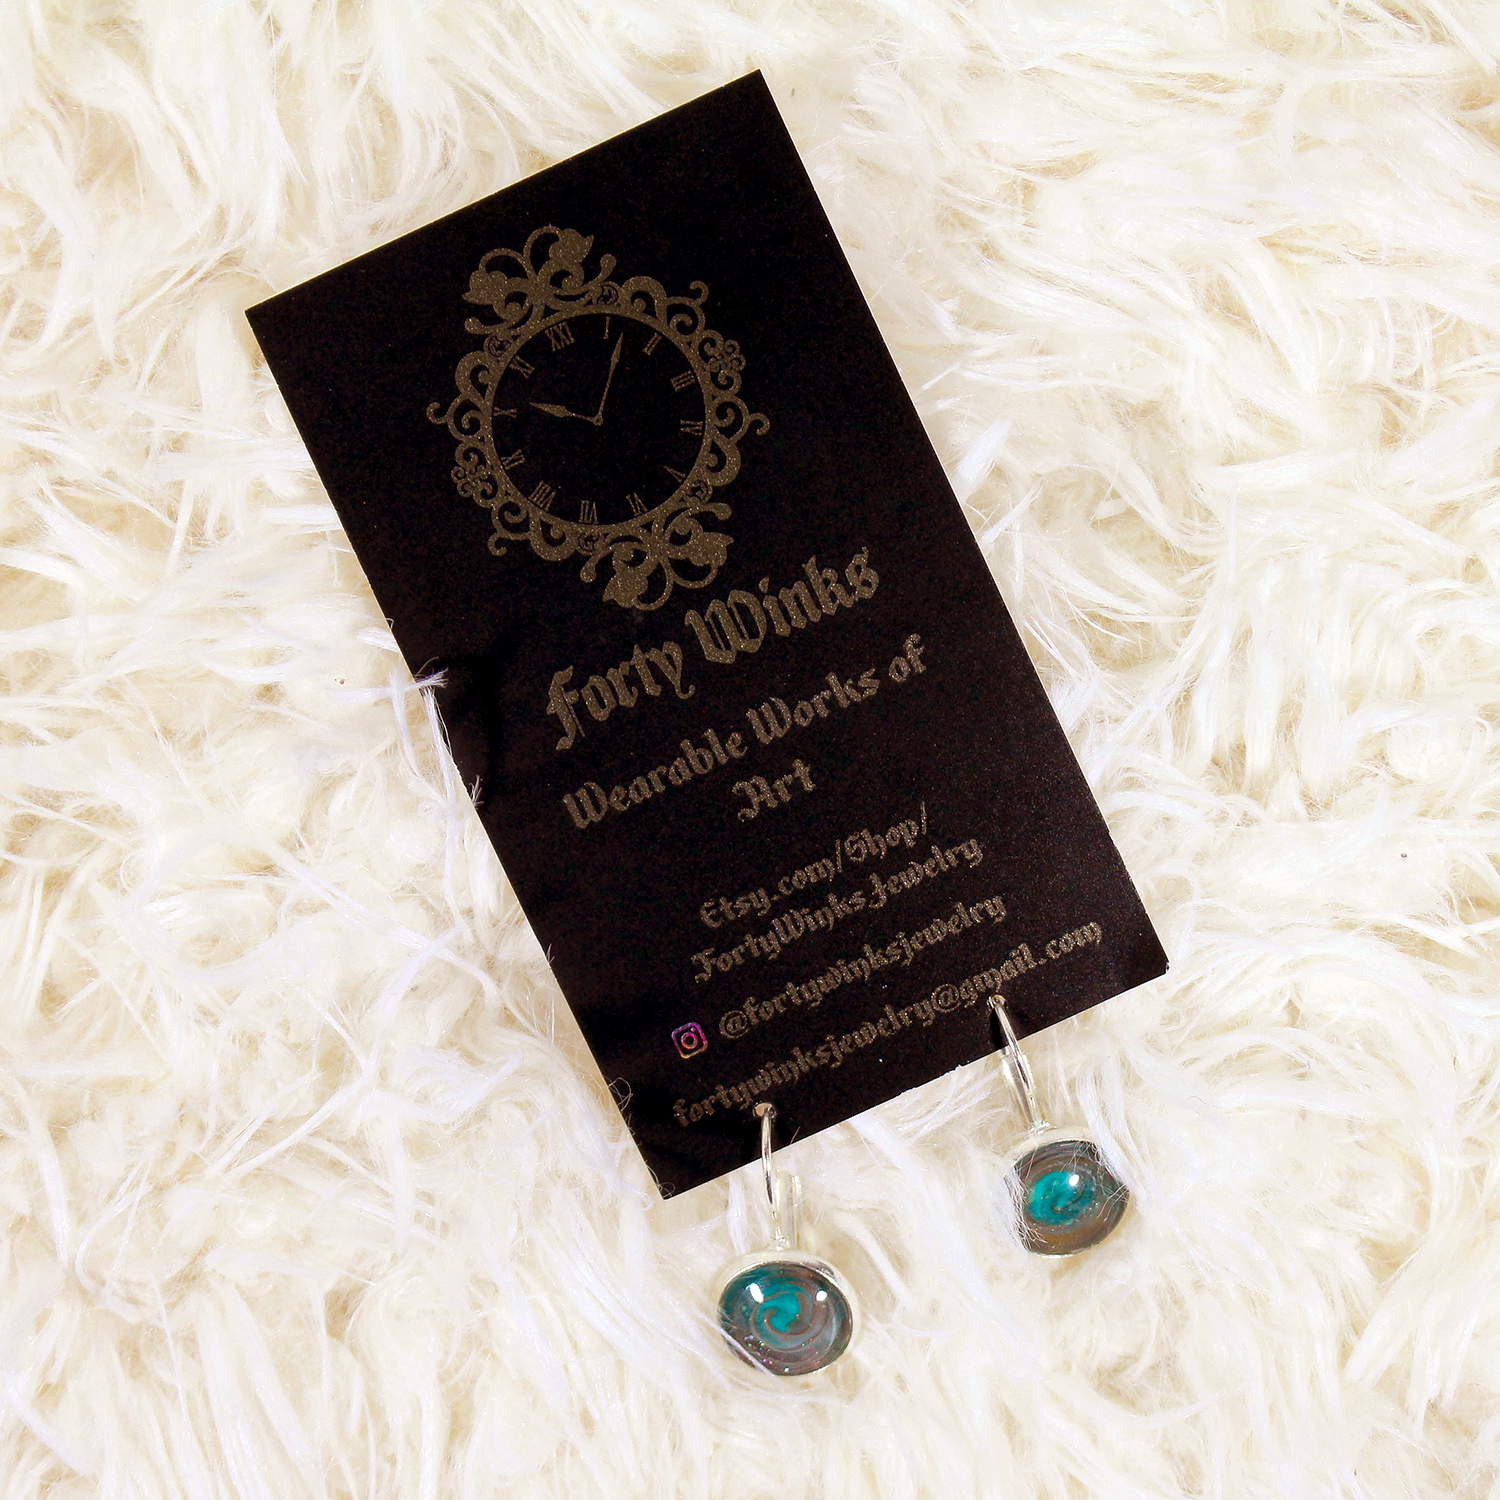 February Indie Pickup Forty Winks Earrings || Southeast by Midwest #indiepickup #februaryindiepickup #indiebeauty #fortywinks